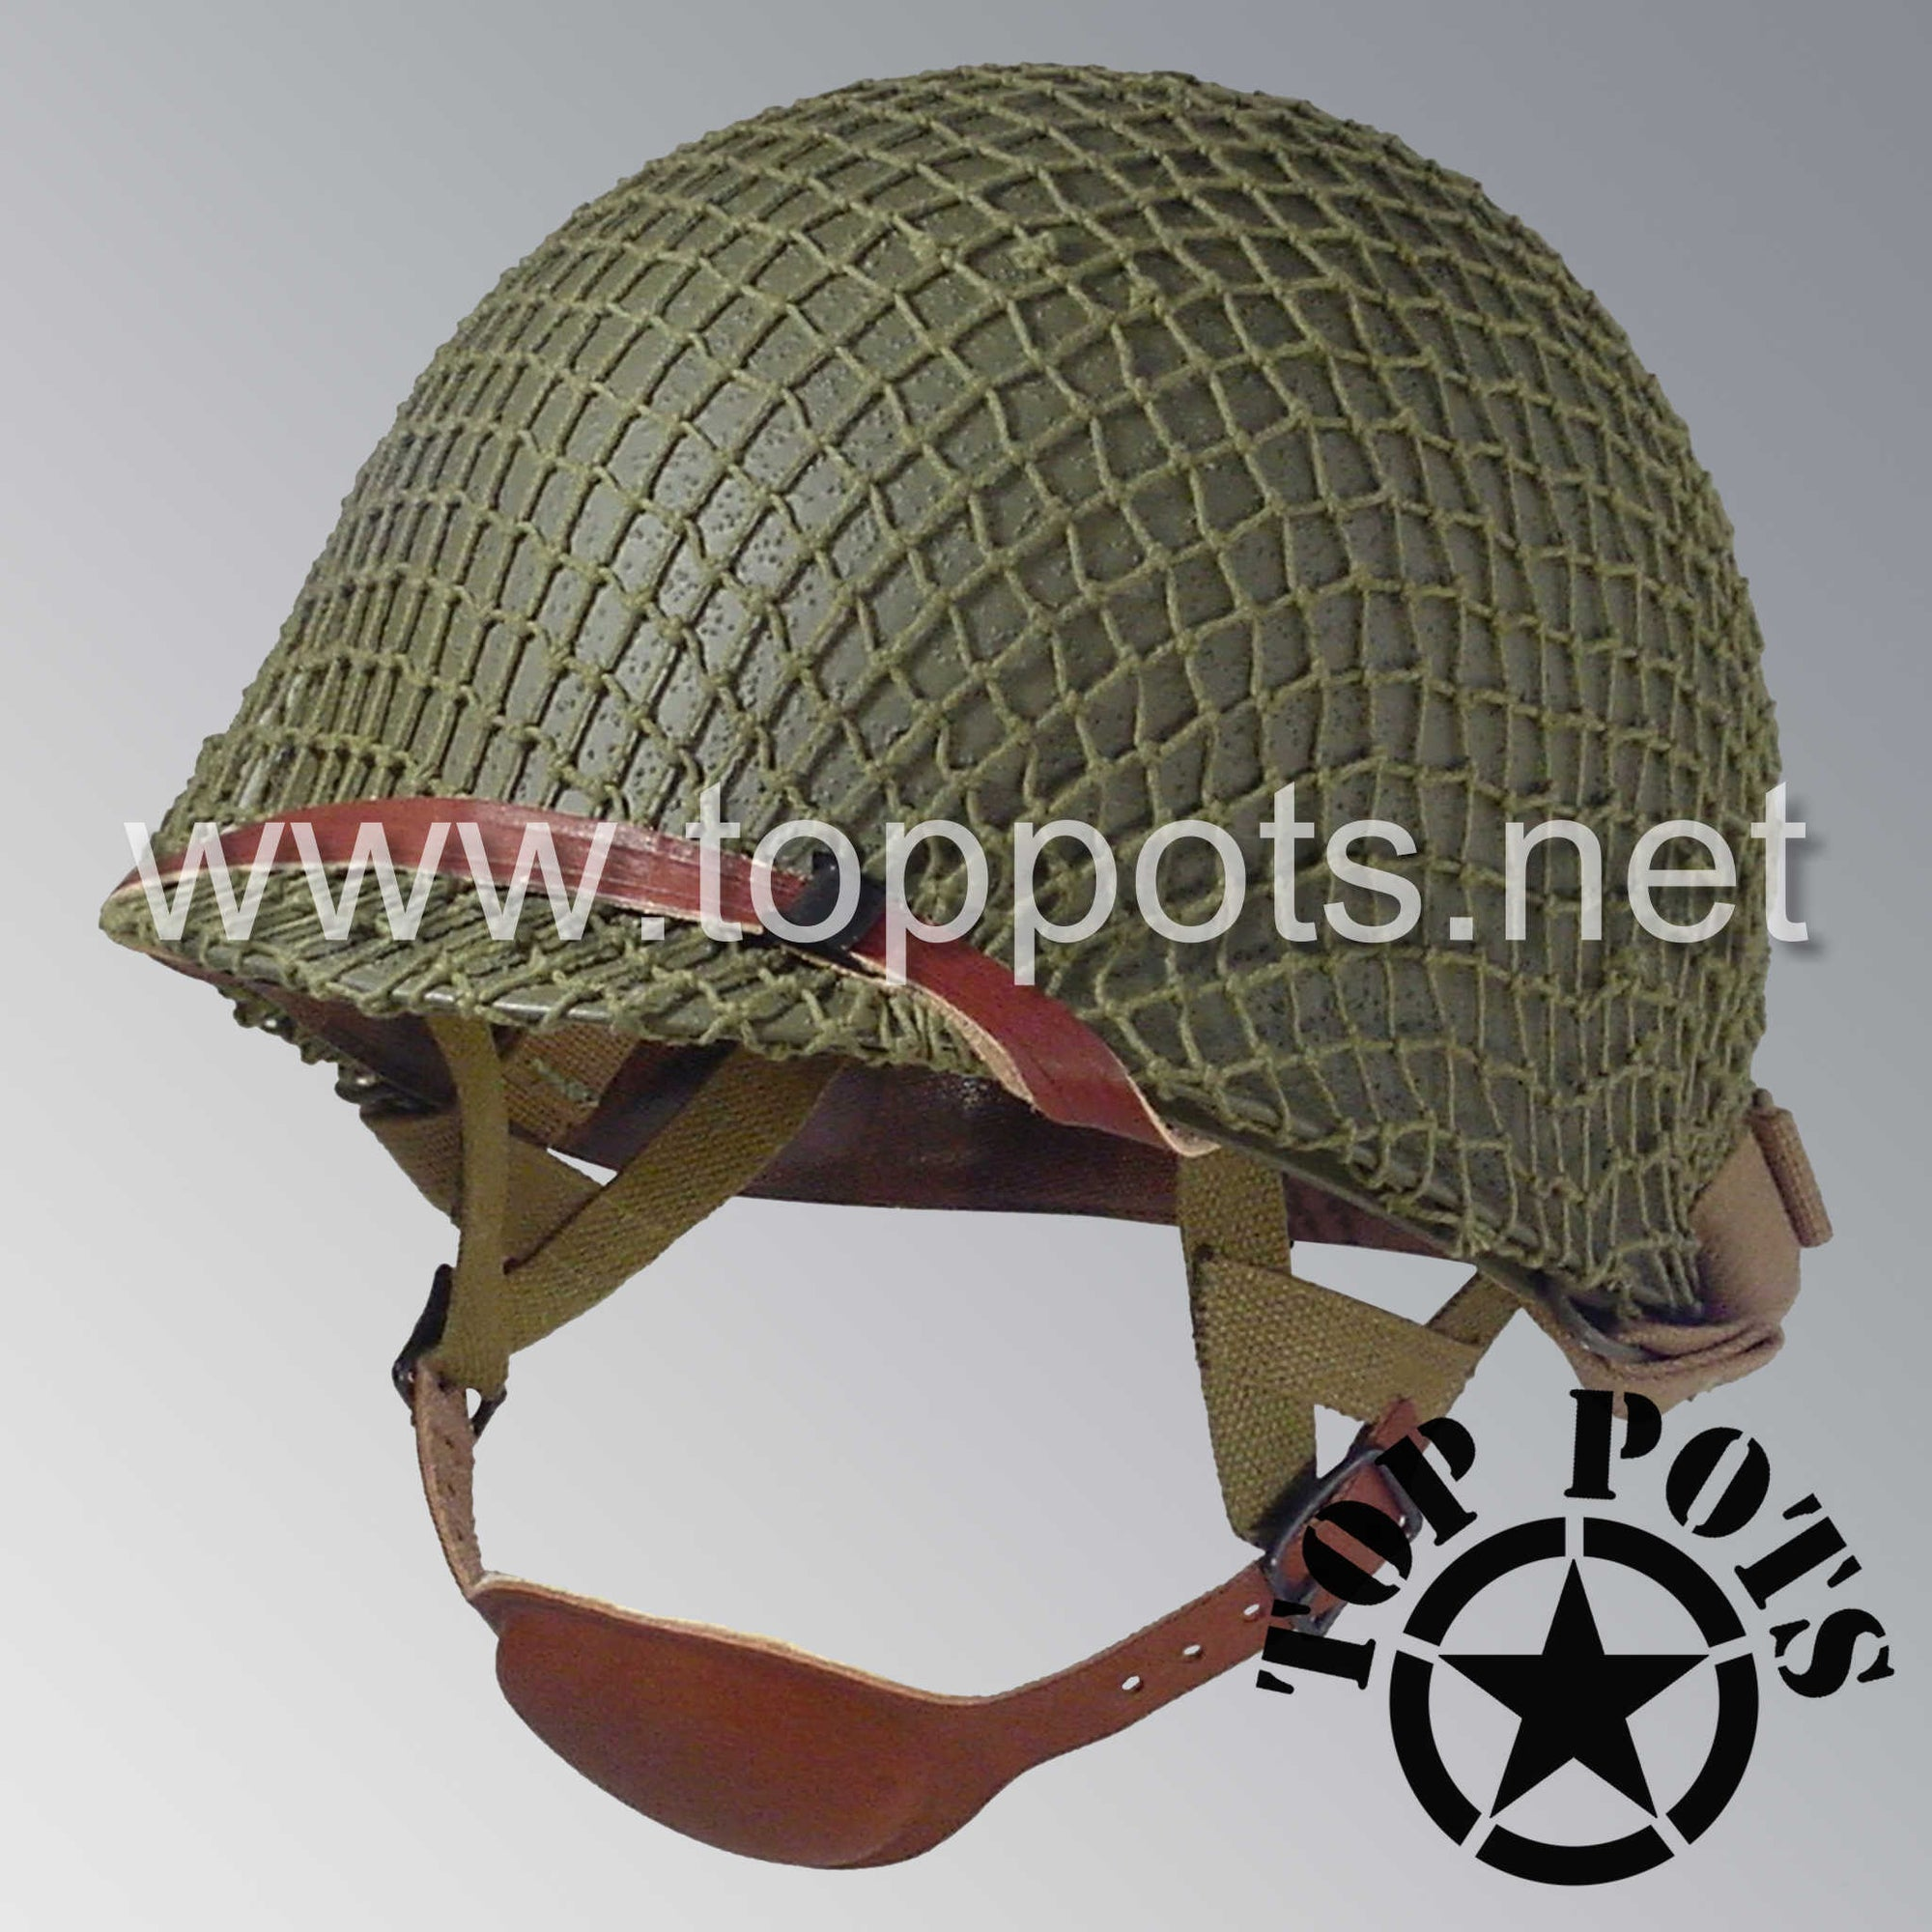 Image 1 of WWII US Army Restored Original M1C Paratrooper Airborne Helmet Swivel Bale Shell and Liner with OD 3 Net